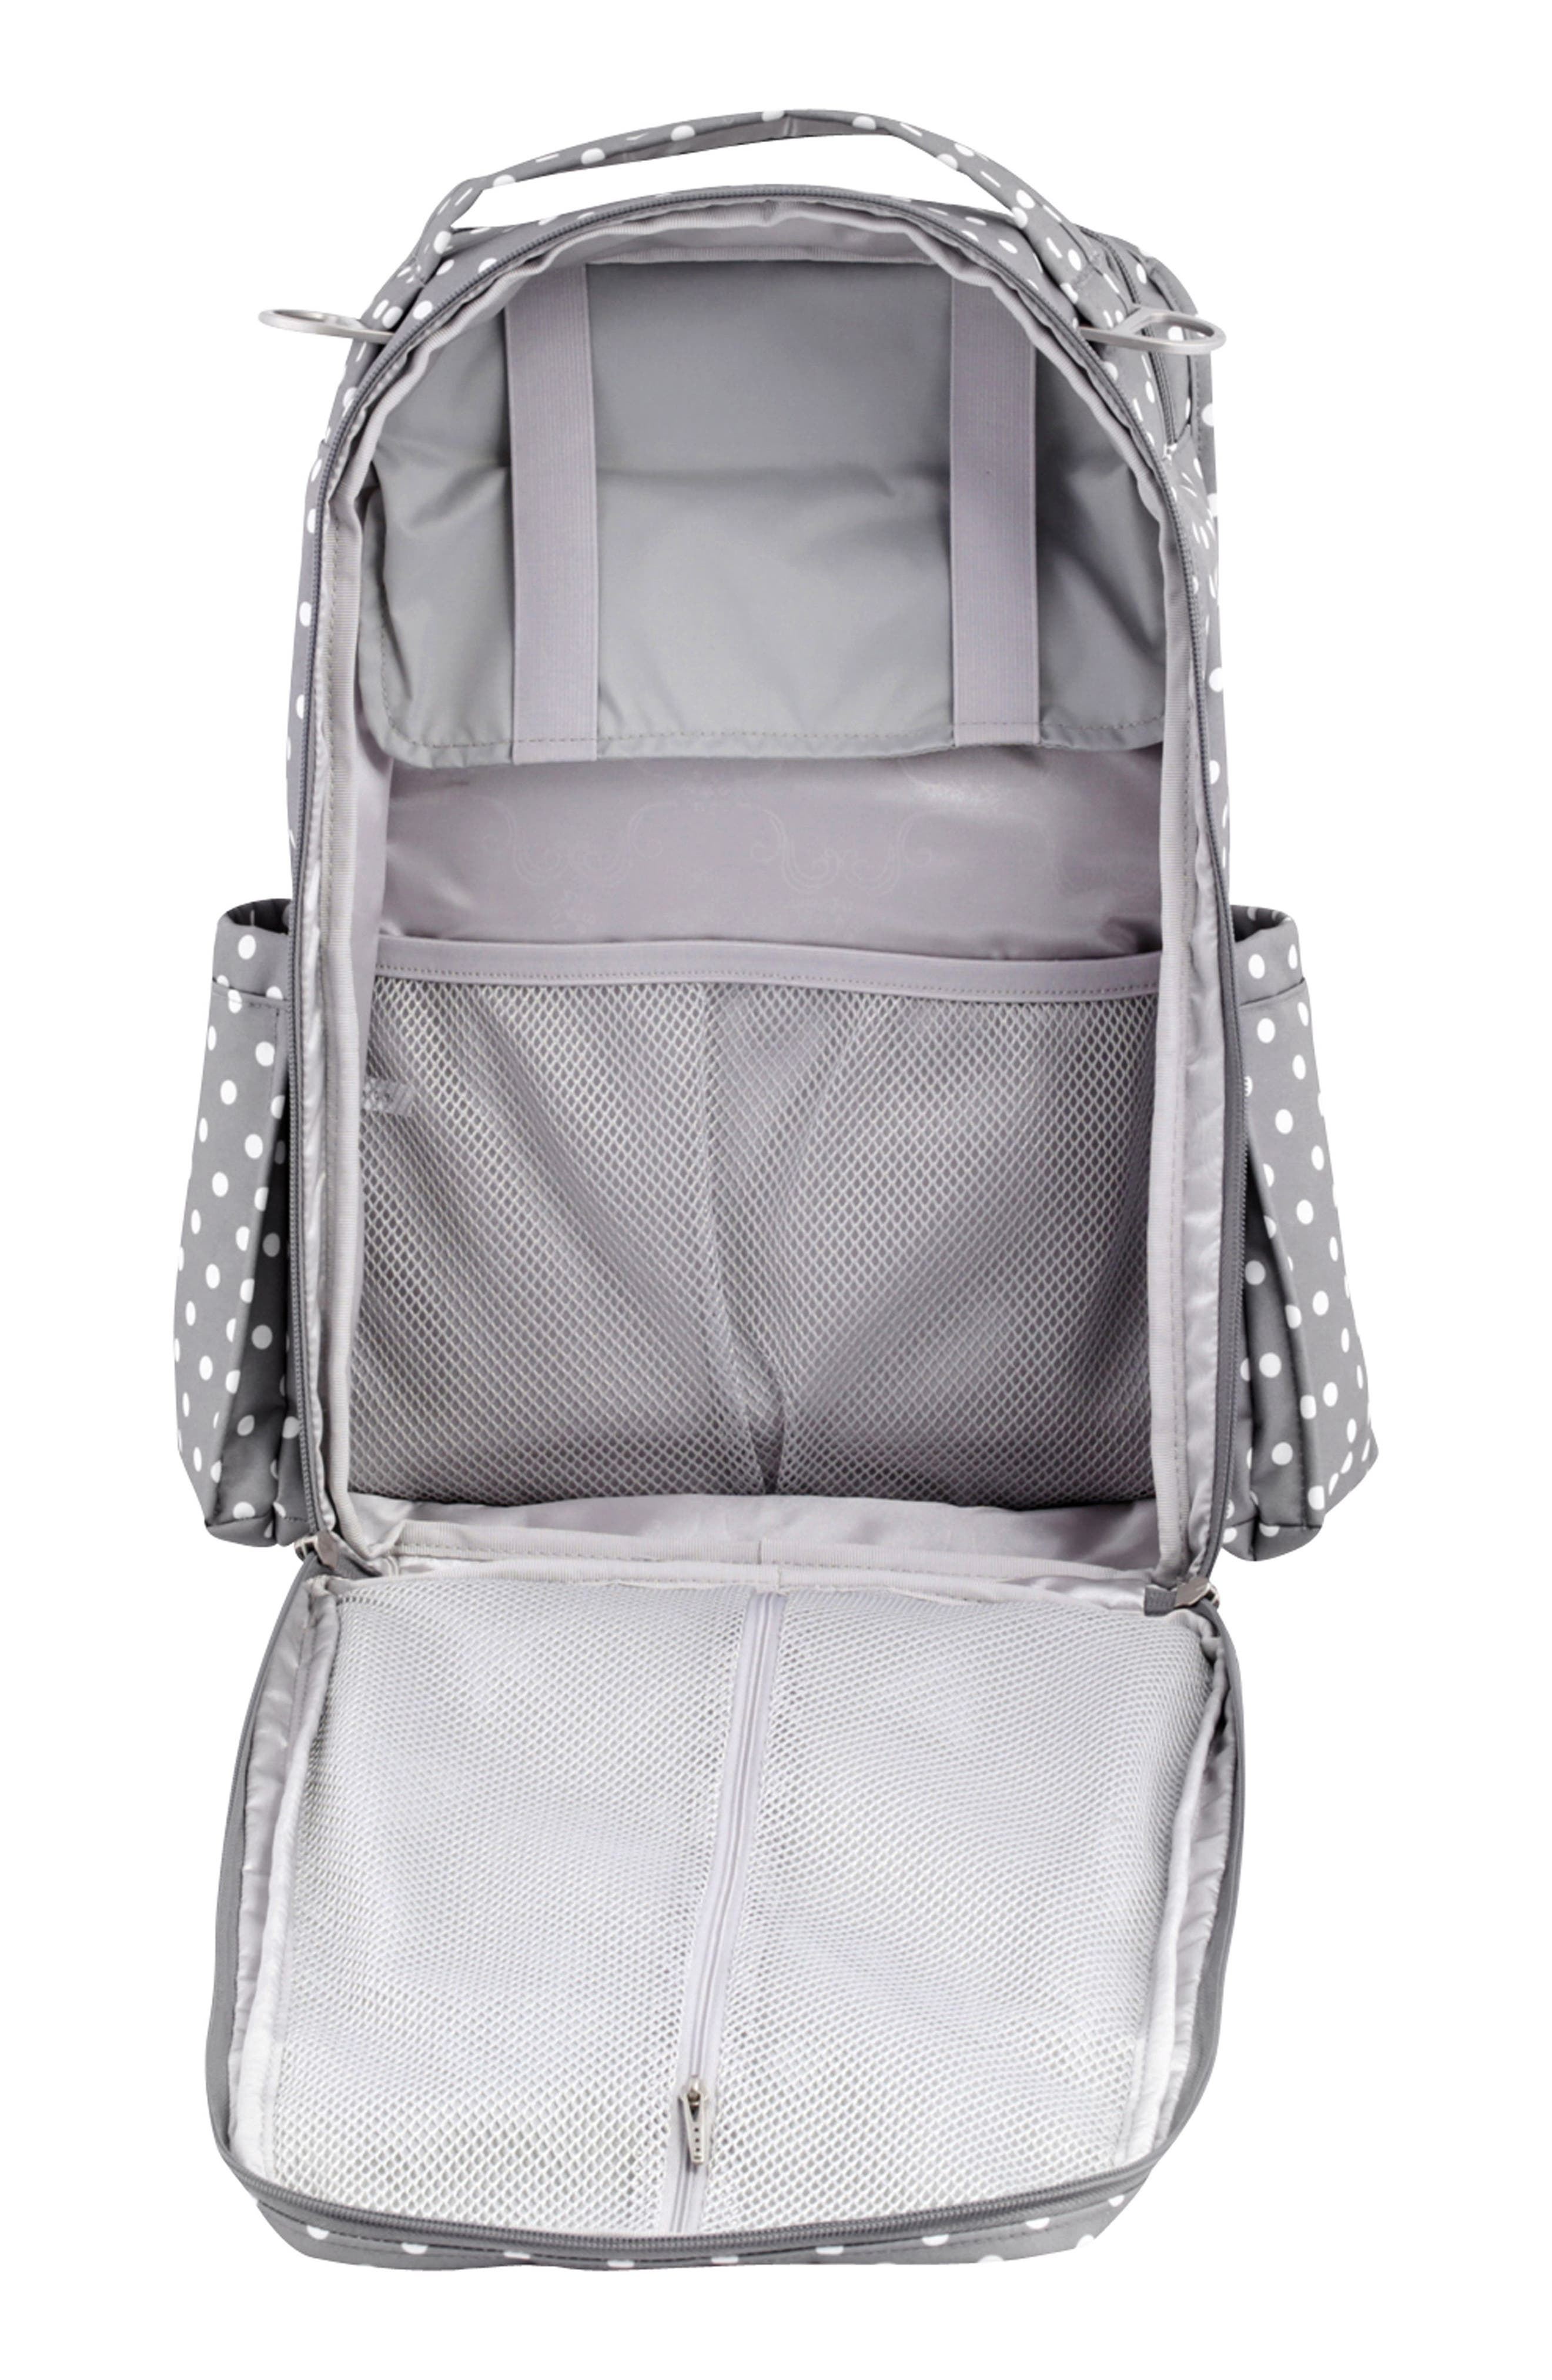 'Be Right Back' Diaper Backpack,                             Alternate thumbnail 52, color,